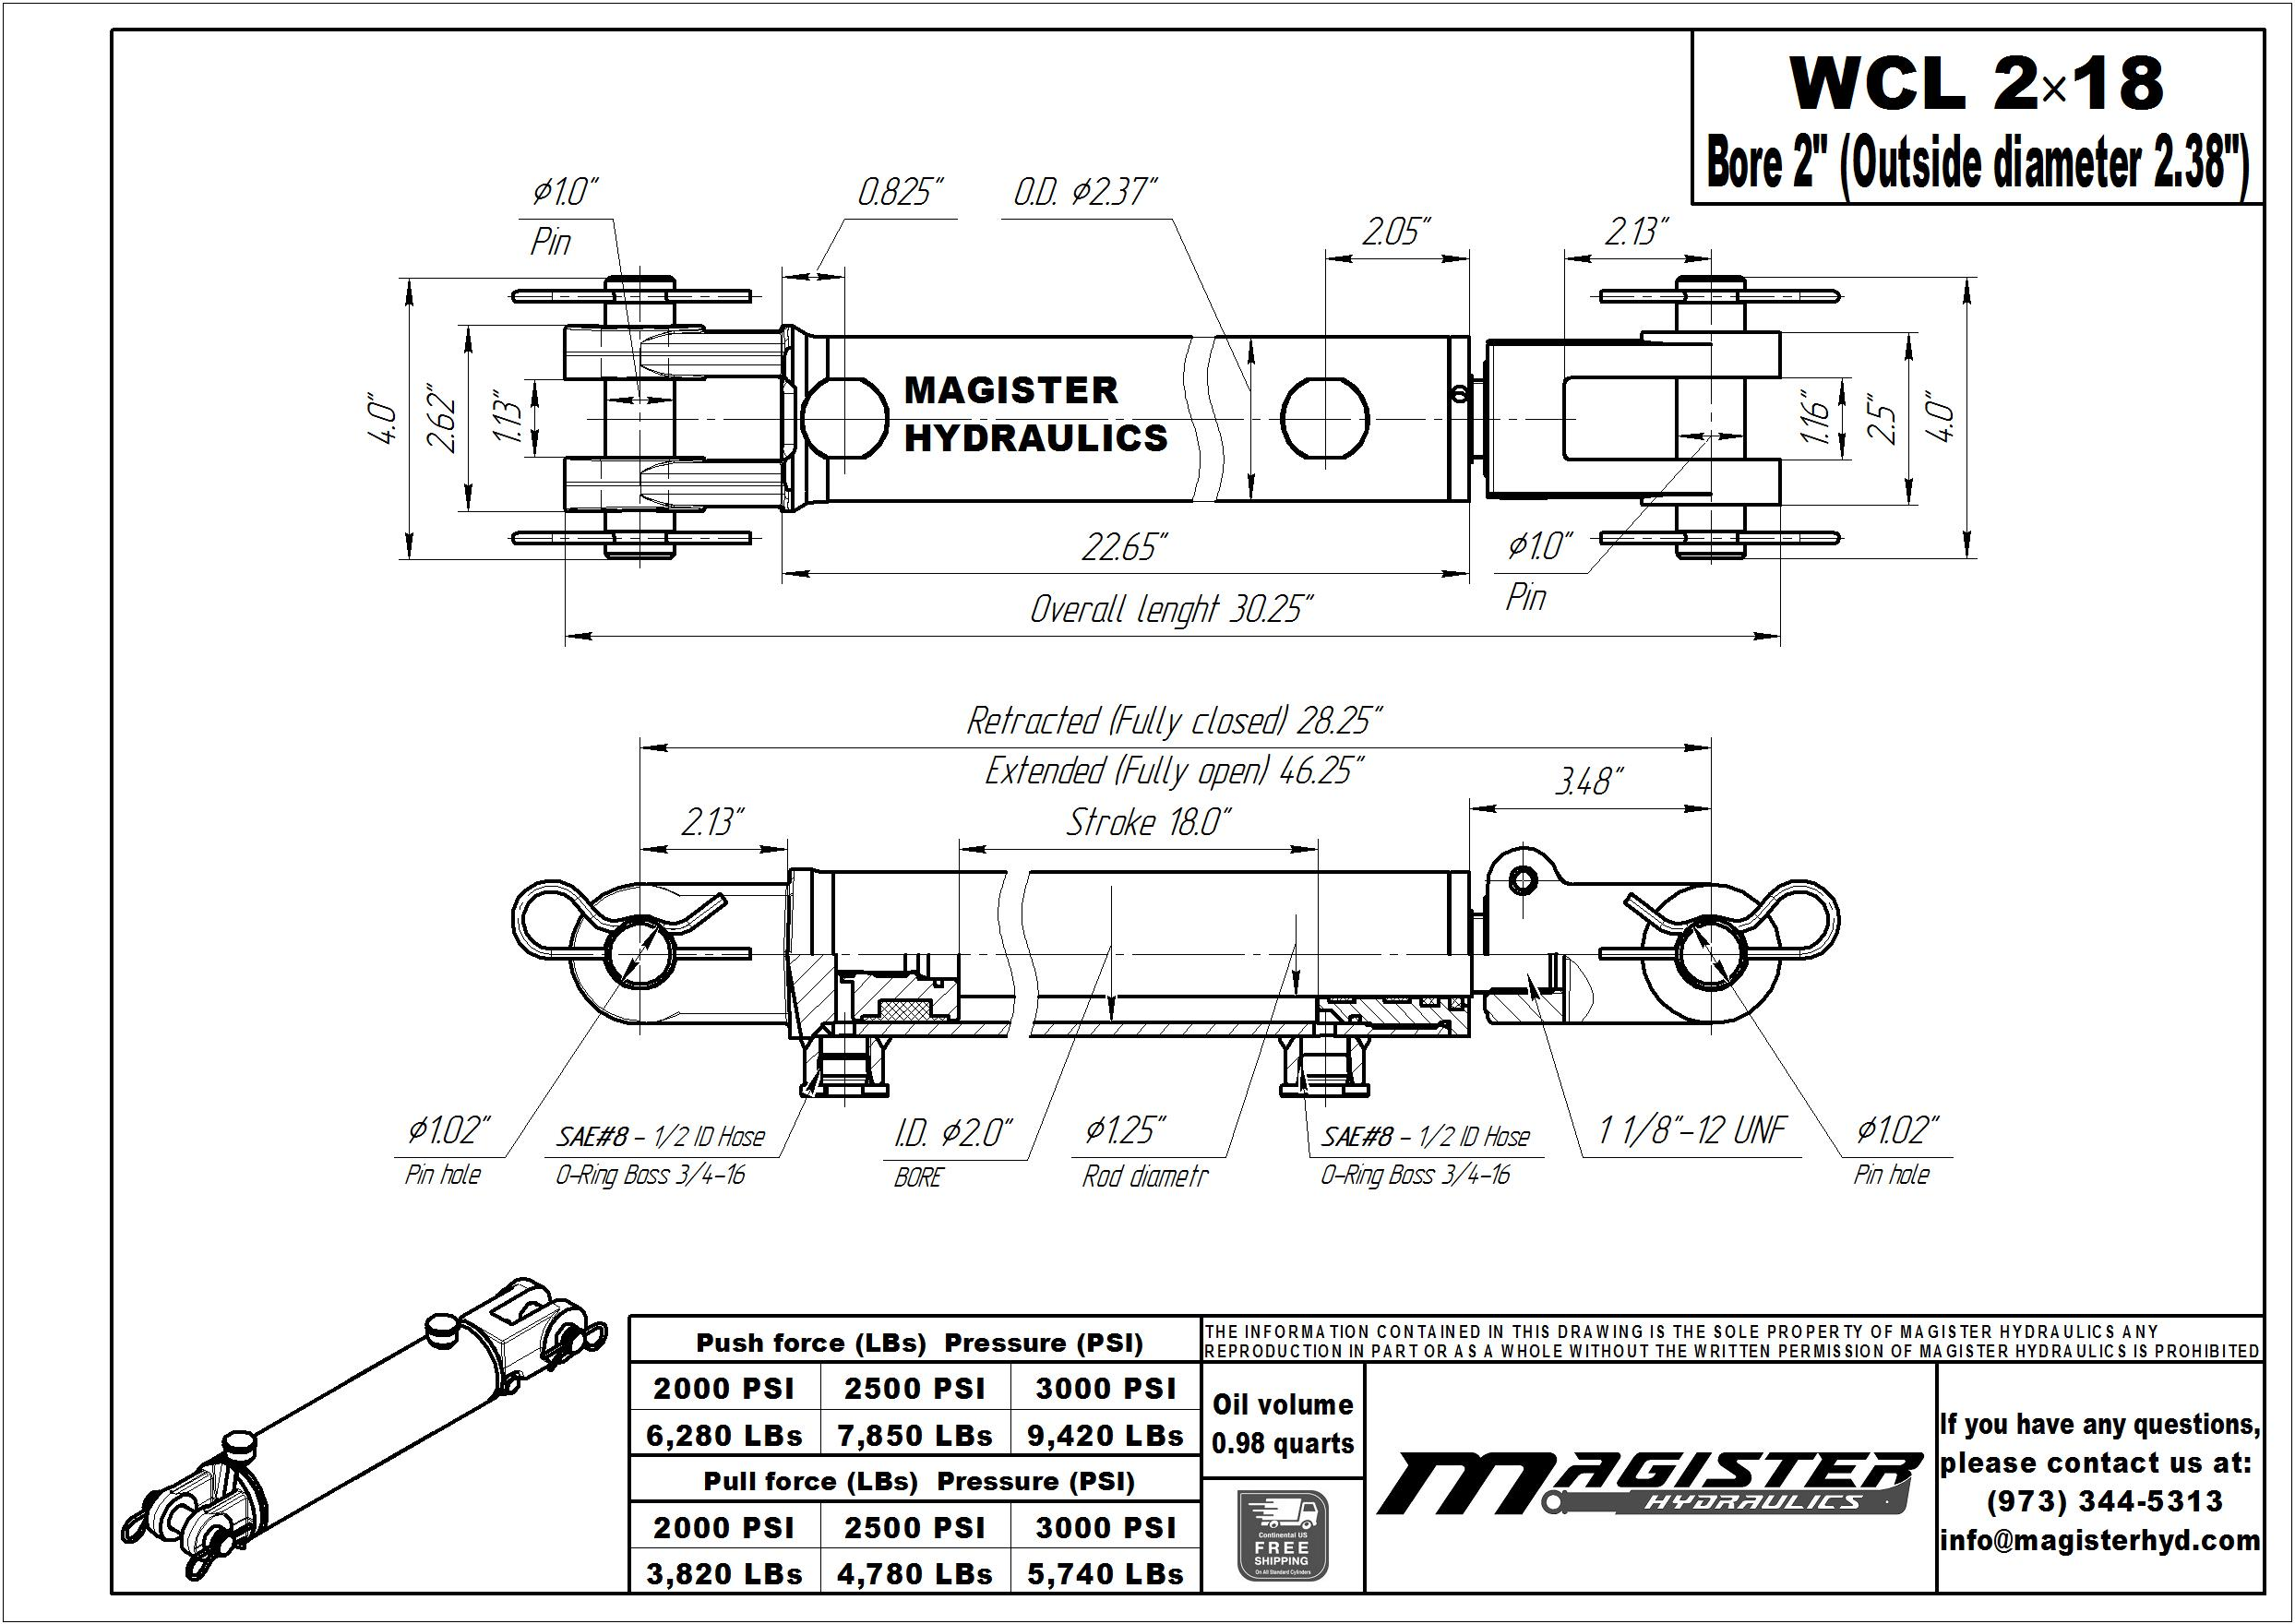 2 bore x 18 stroke hydraulic cylinder, welded clevis double acting cylinder | Magister Hydraulics